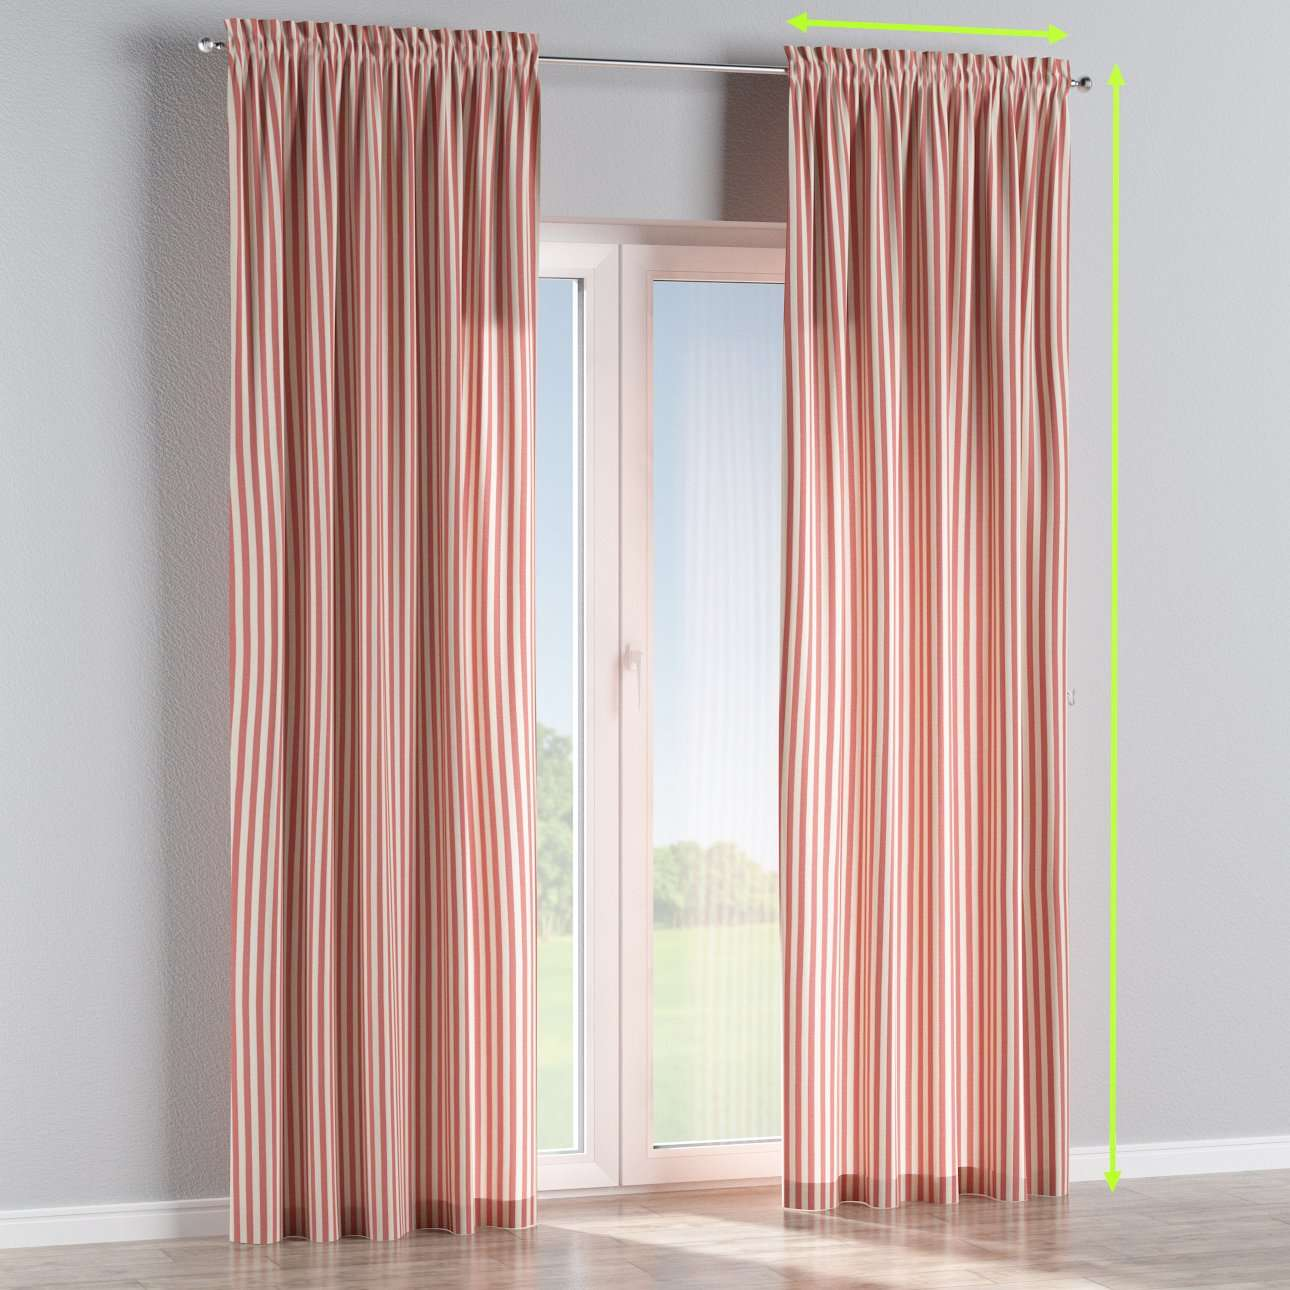 Slot and frill lined curtains in collection Quadro, fabric: 136-17